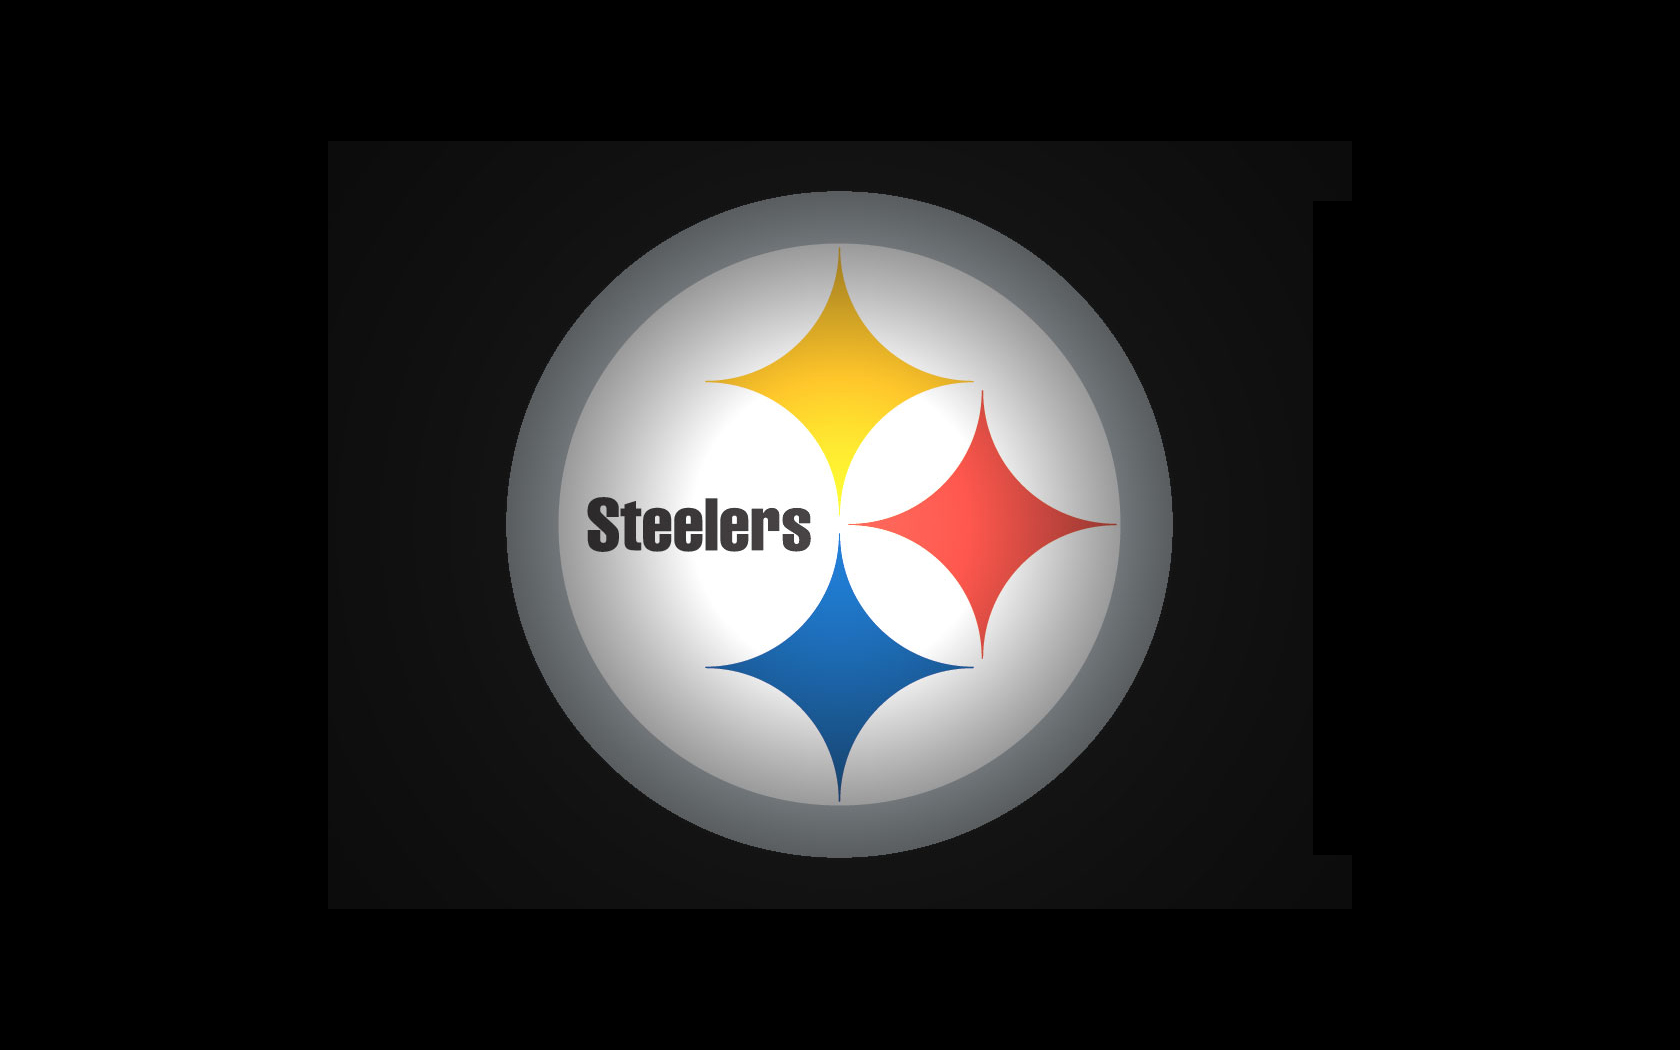 Bringing wallpapers everyday so you can enjoy them all! :DToday, a Pittsburgh Steelers wallpaper background..what more could you ask? :D